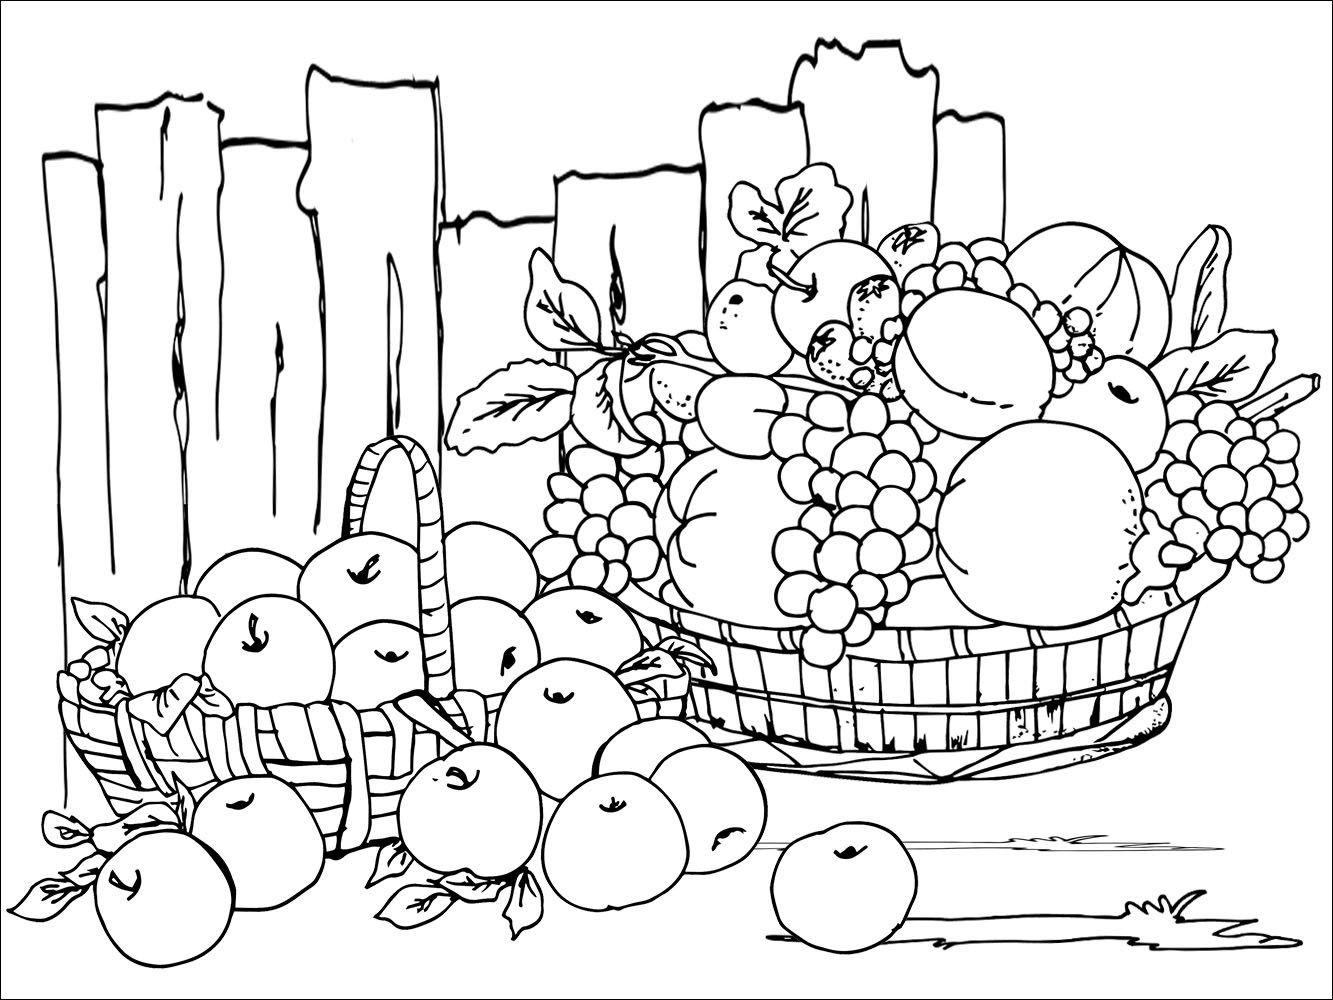 october coloring pages, free fall coloring pages, fall tree coloring pages, fall coloring pages pdf, fall coloring pages for first grade, fall coloring pages for adults